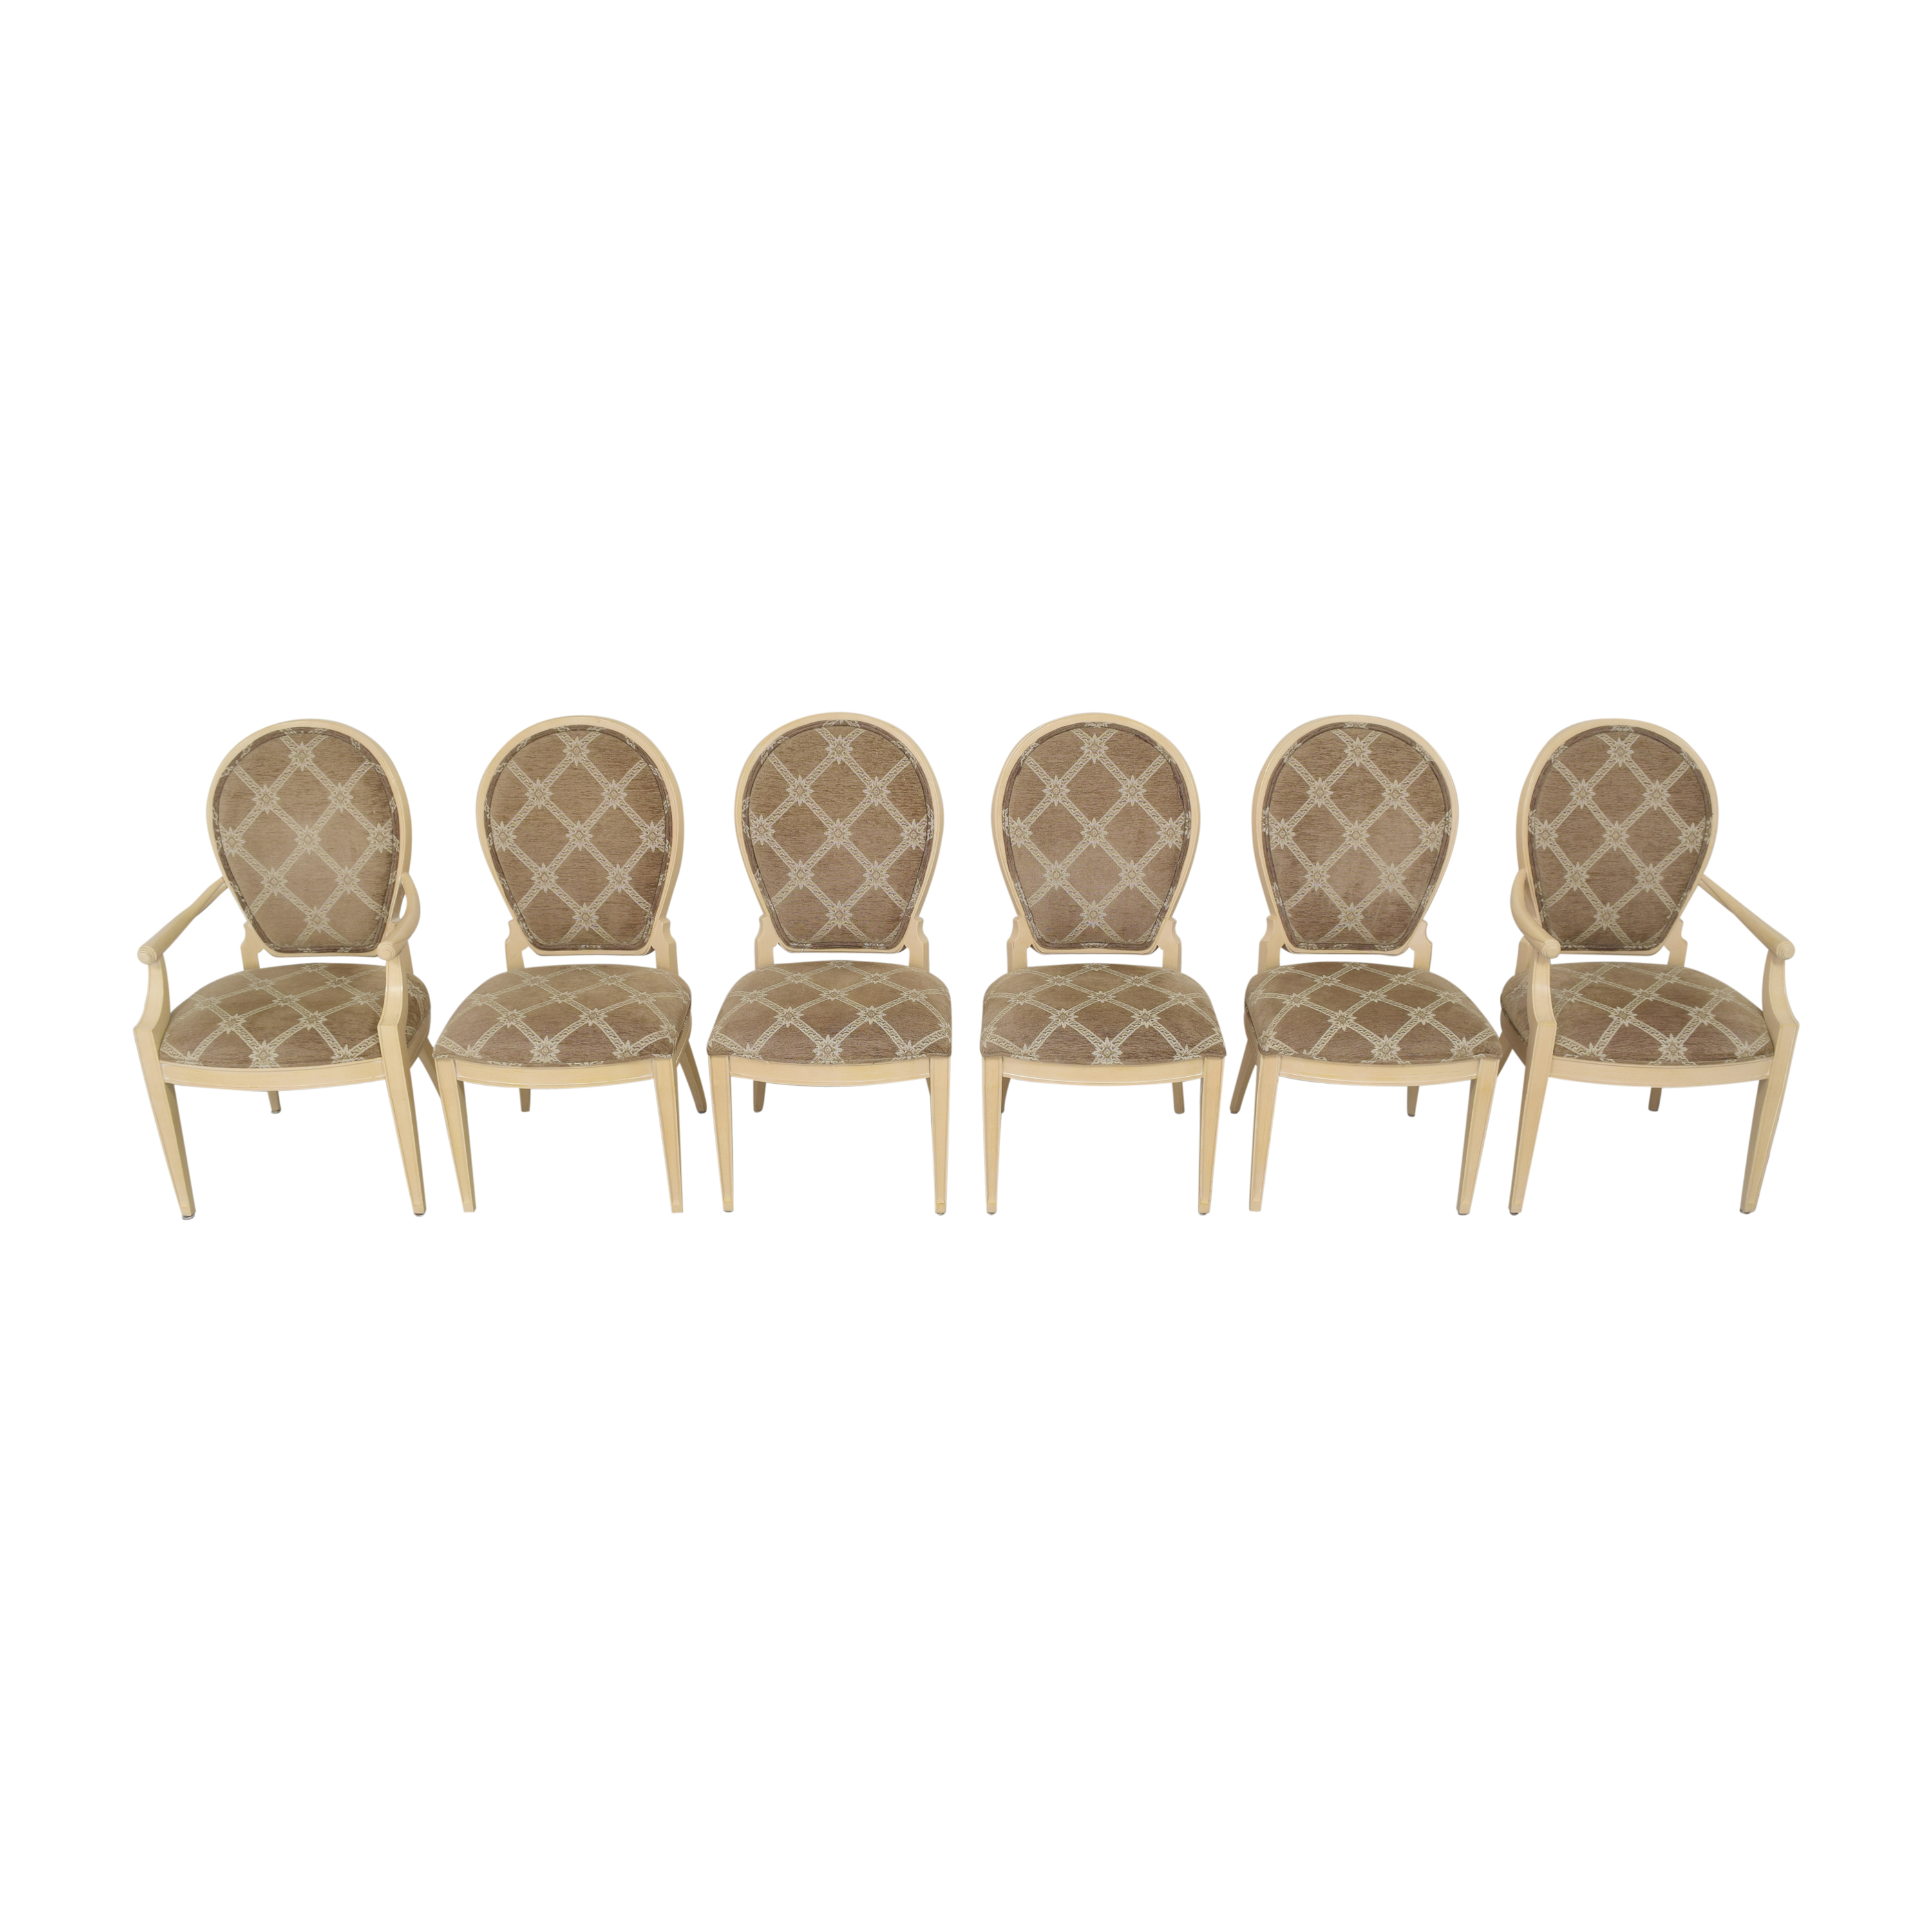 Century Furniture Century Furniture Dining Chairs dimensions